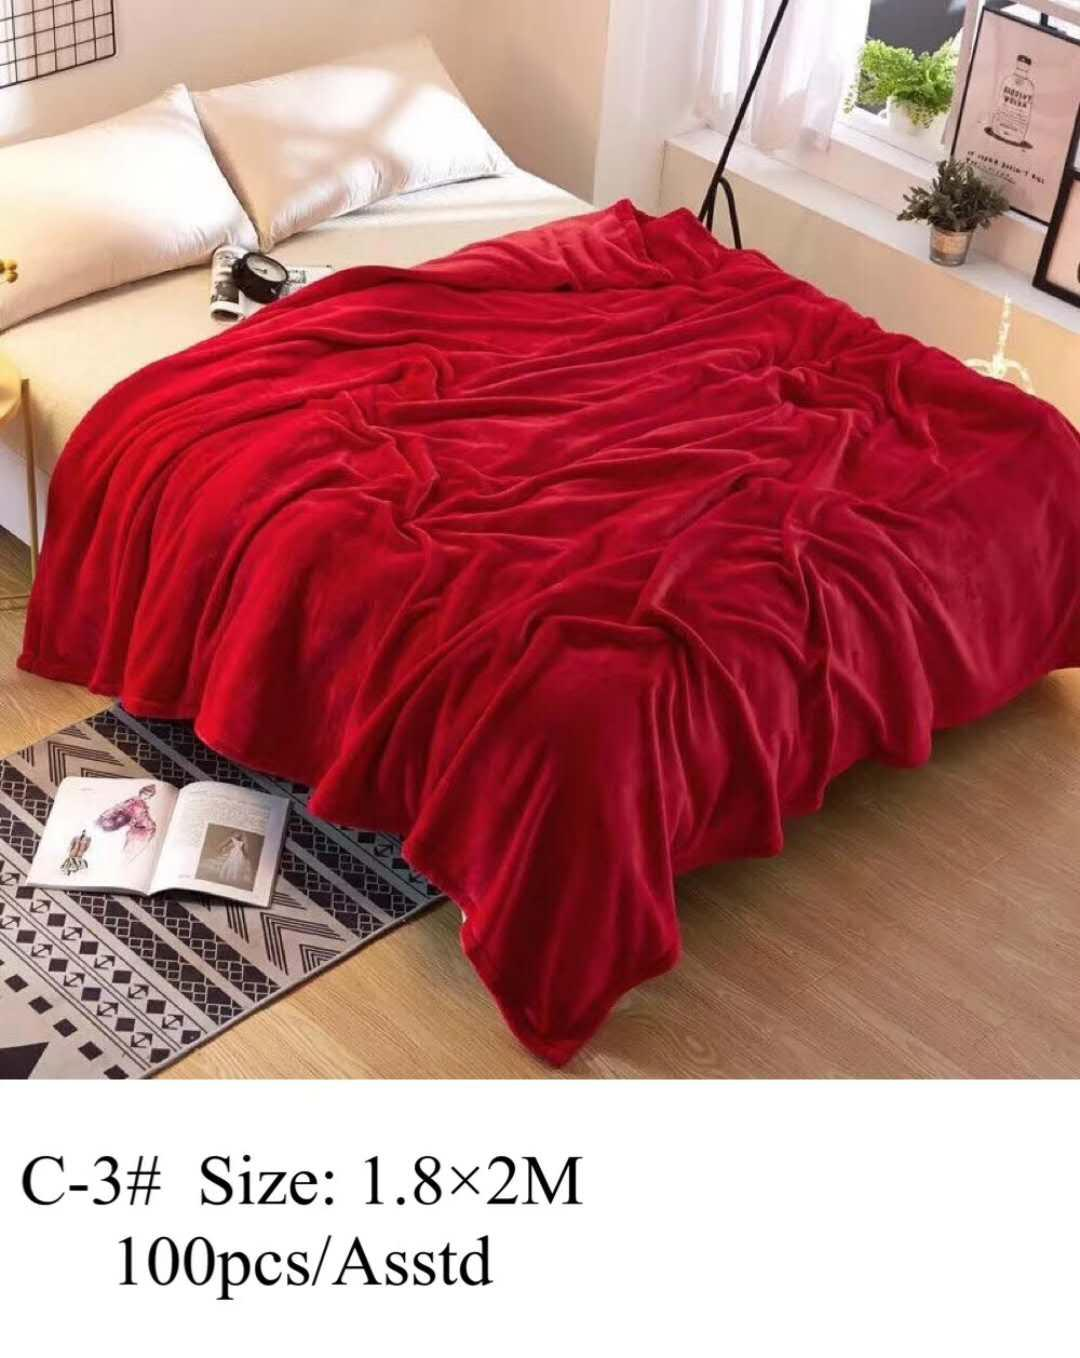 d00b18a6fe Blankets for sale - Throws prices